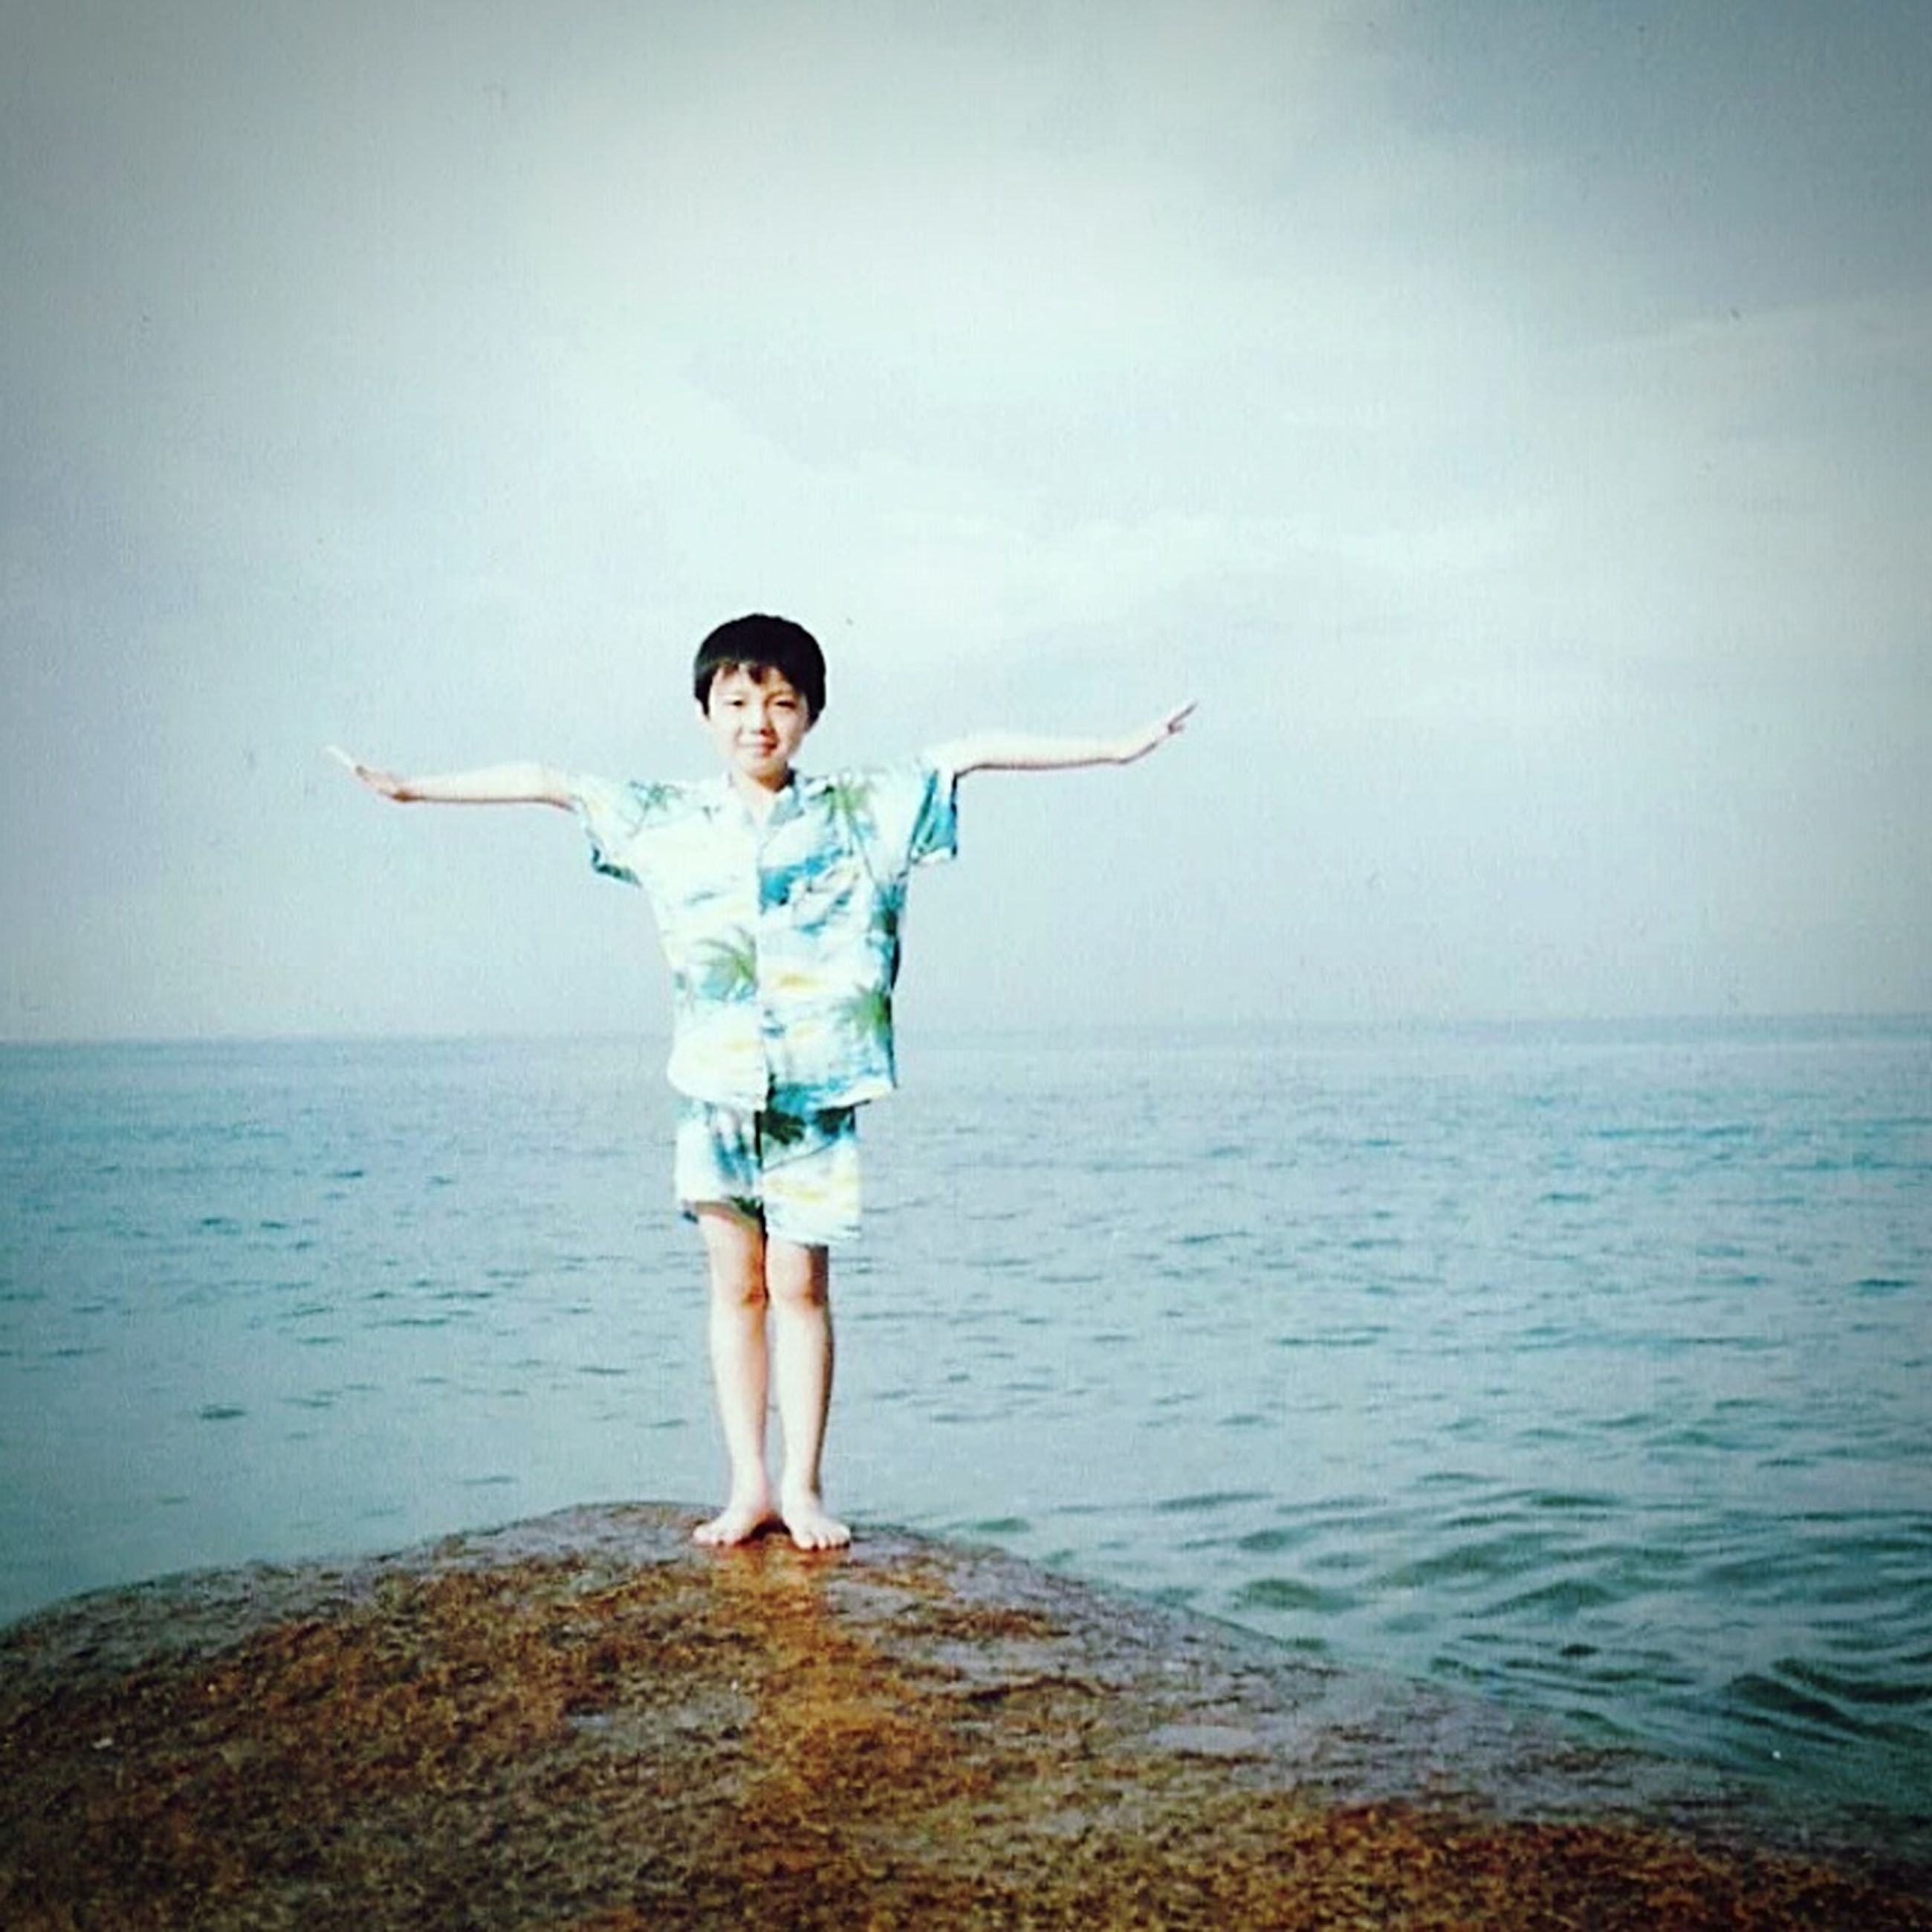 full length, water, lifestyles, casual clothing, leisure activity, sea, standing, person, sky, rear view, young adult, horizon over water, front view, arms outstretched, tranquility, nature, portrait, childhood